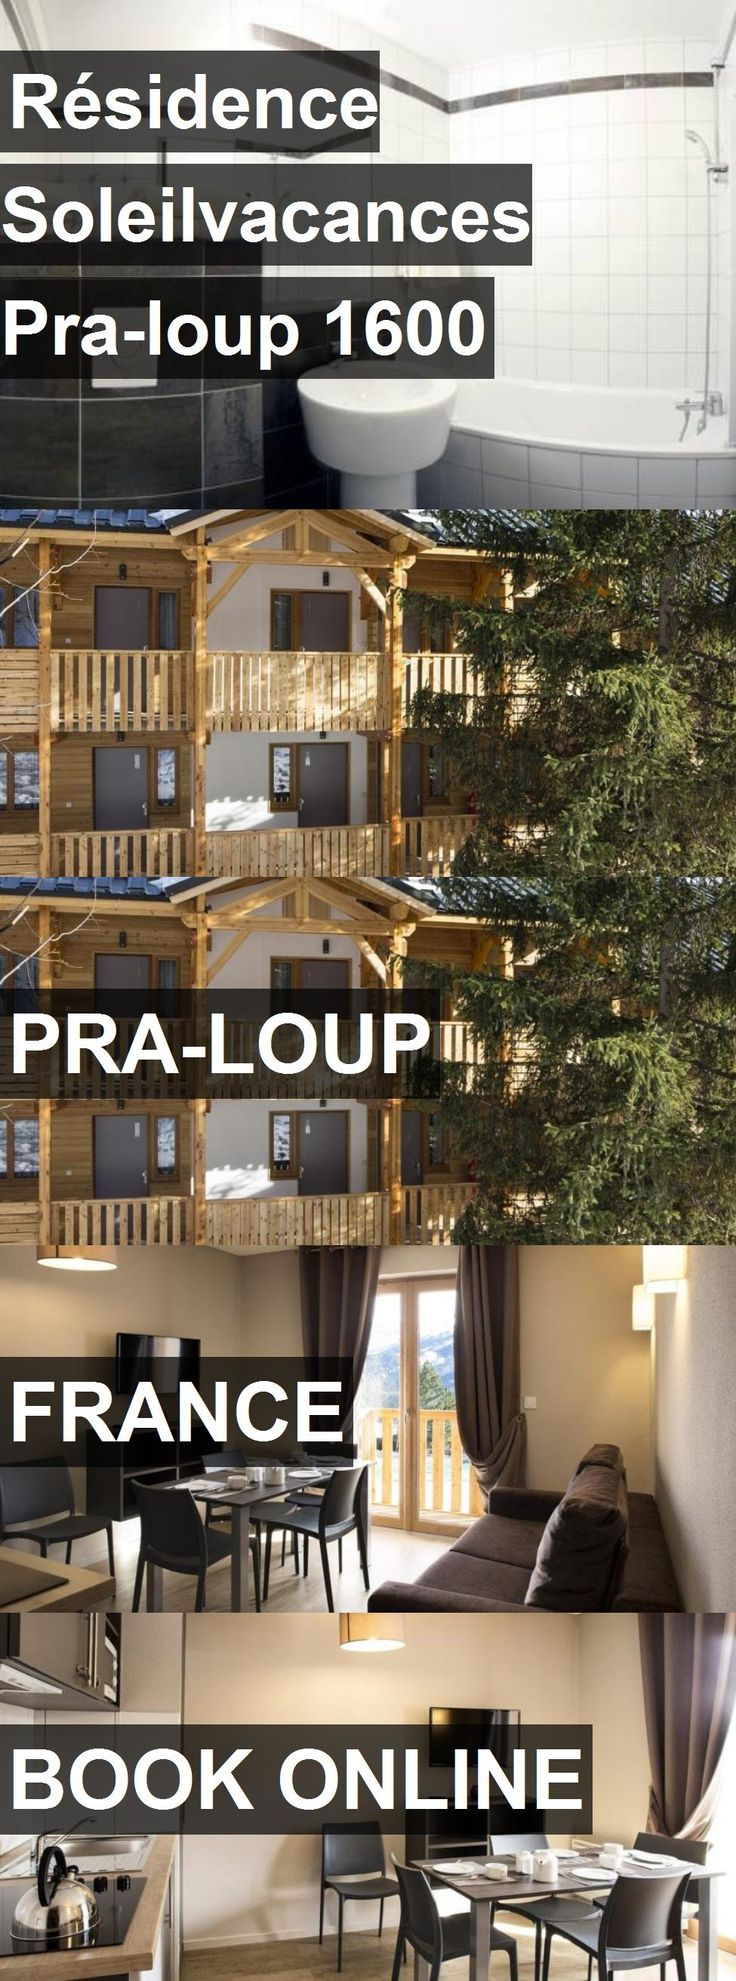 Hotel Résidence Soleilvacances Pra-loup 1600 in Pra-Loup, France. For more information, photos, reviews and best prices please follow the link. #France #Pra-Loup #travel #vacation #hotel